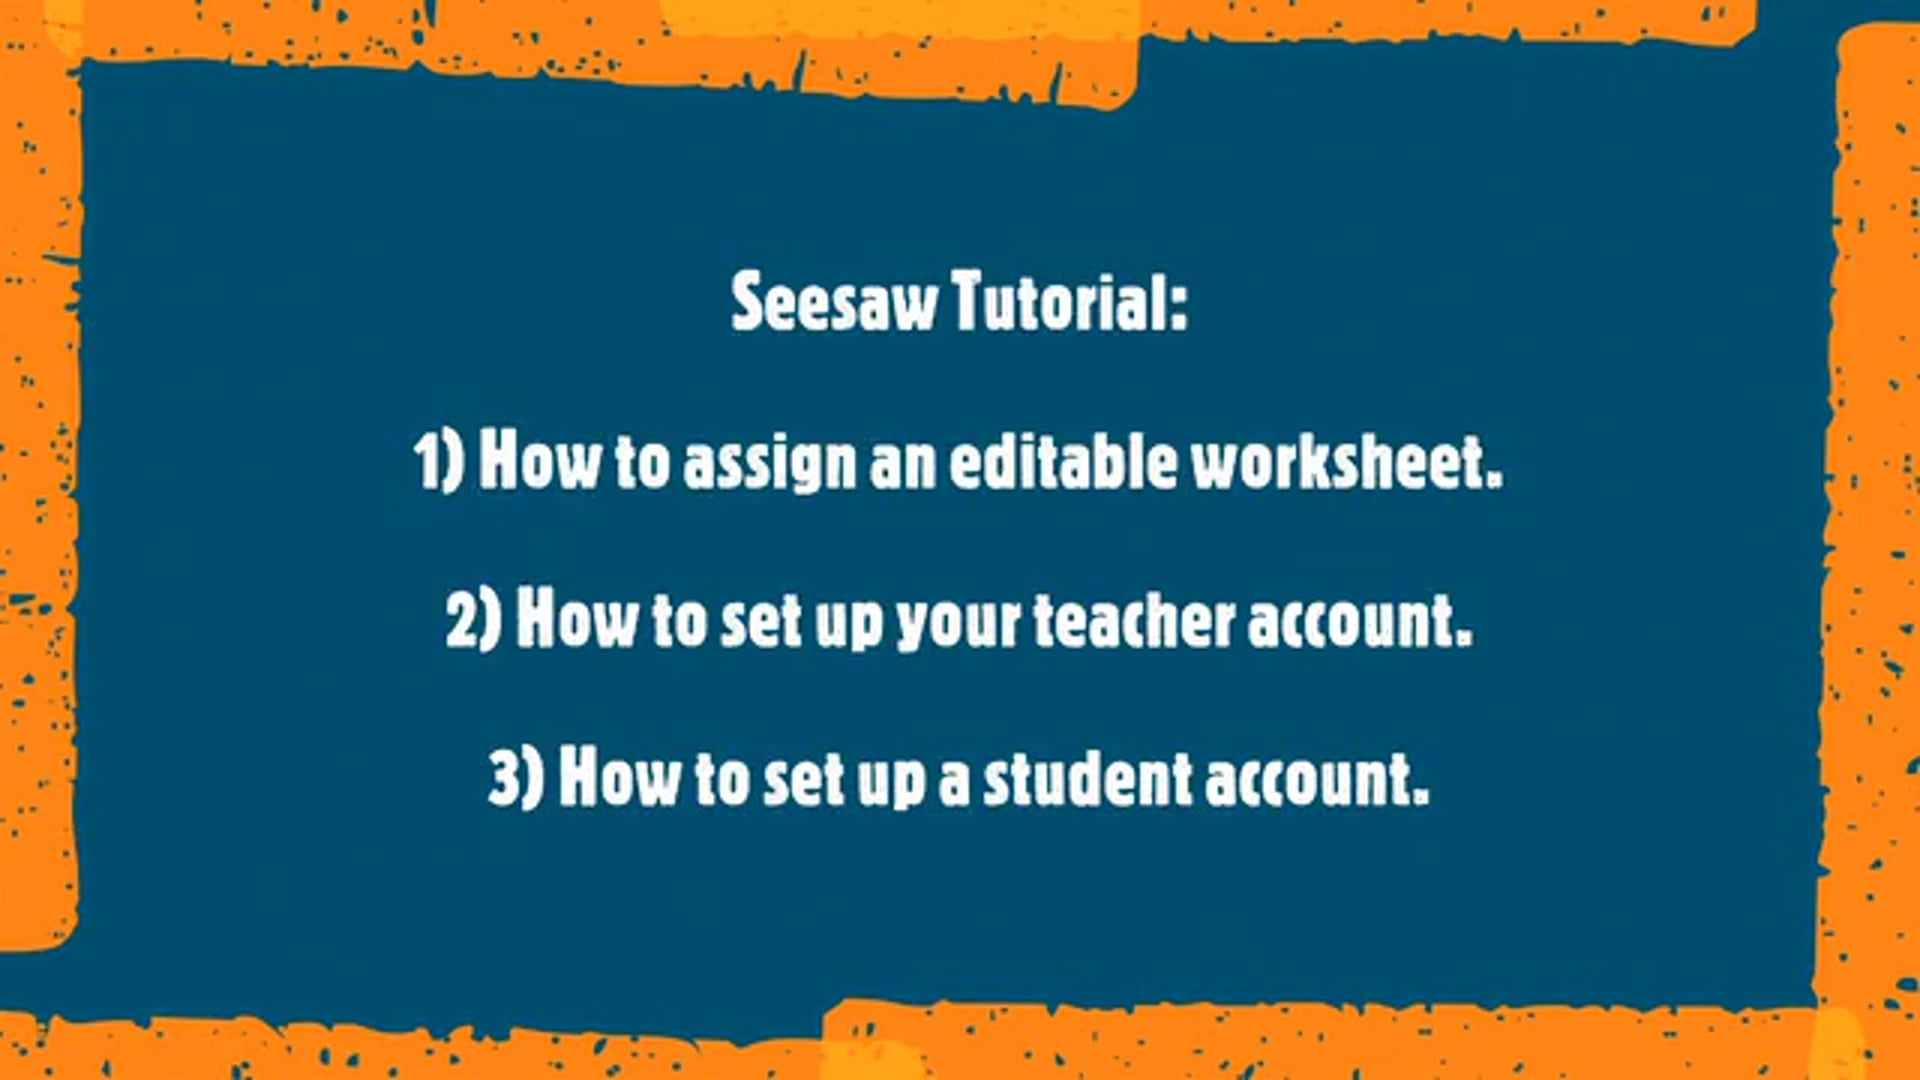 How to assign an editable worksheet in Seesaw